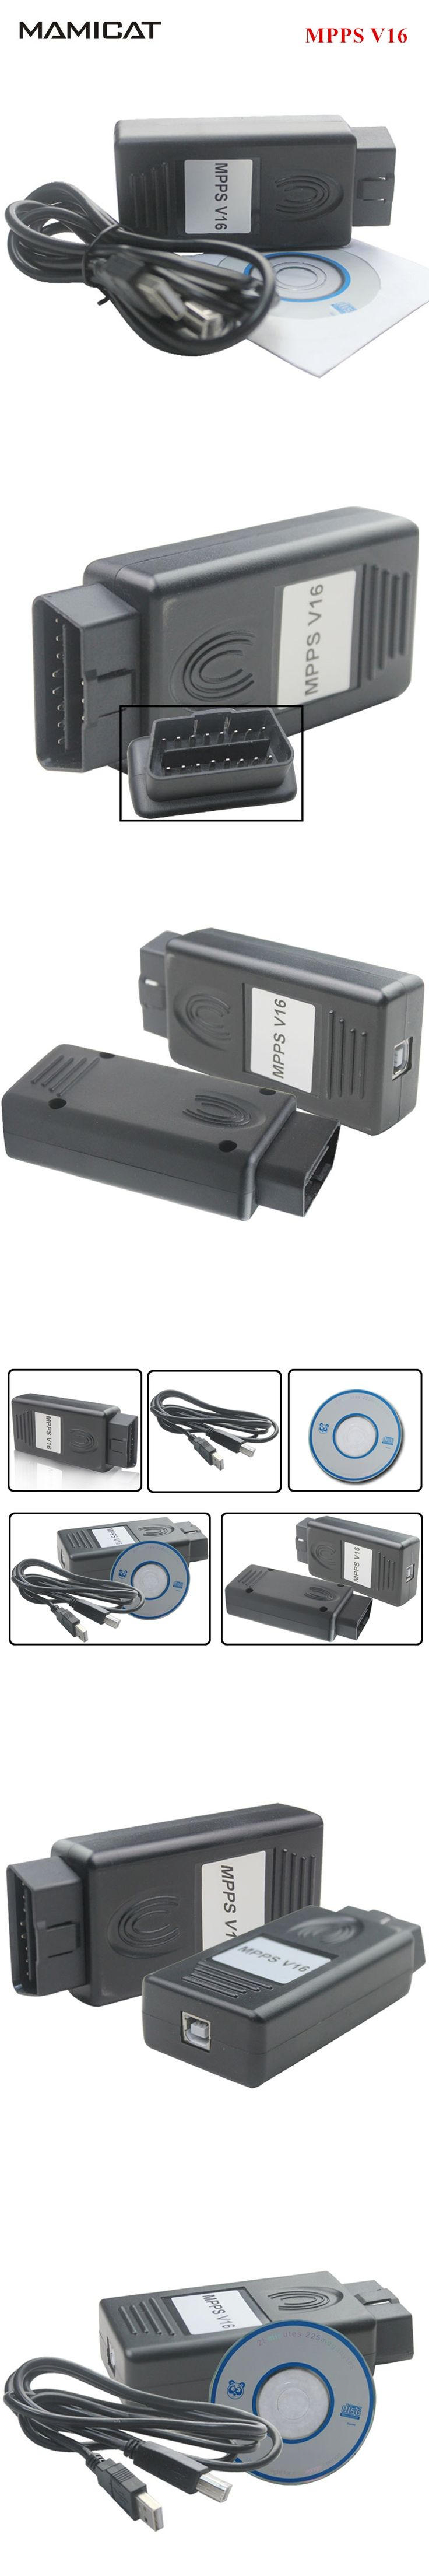 MPPS V16 ECU Chip Tuning Tool For EDC15 EDC16 EDC17 Inkl Checksum SMPS MPPS 16 CAN Flasher Remap Cable